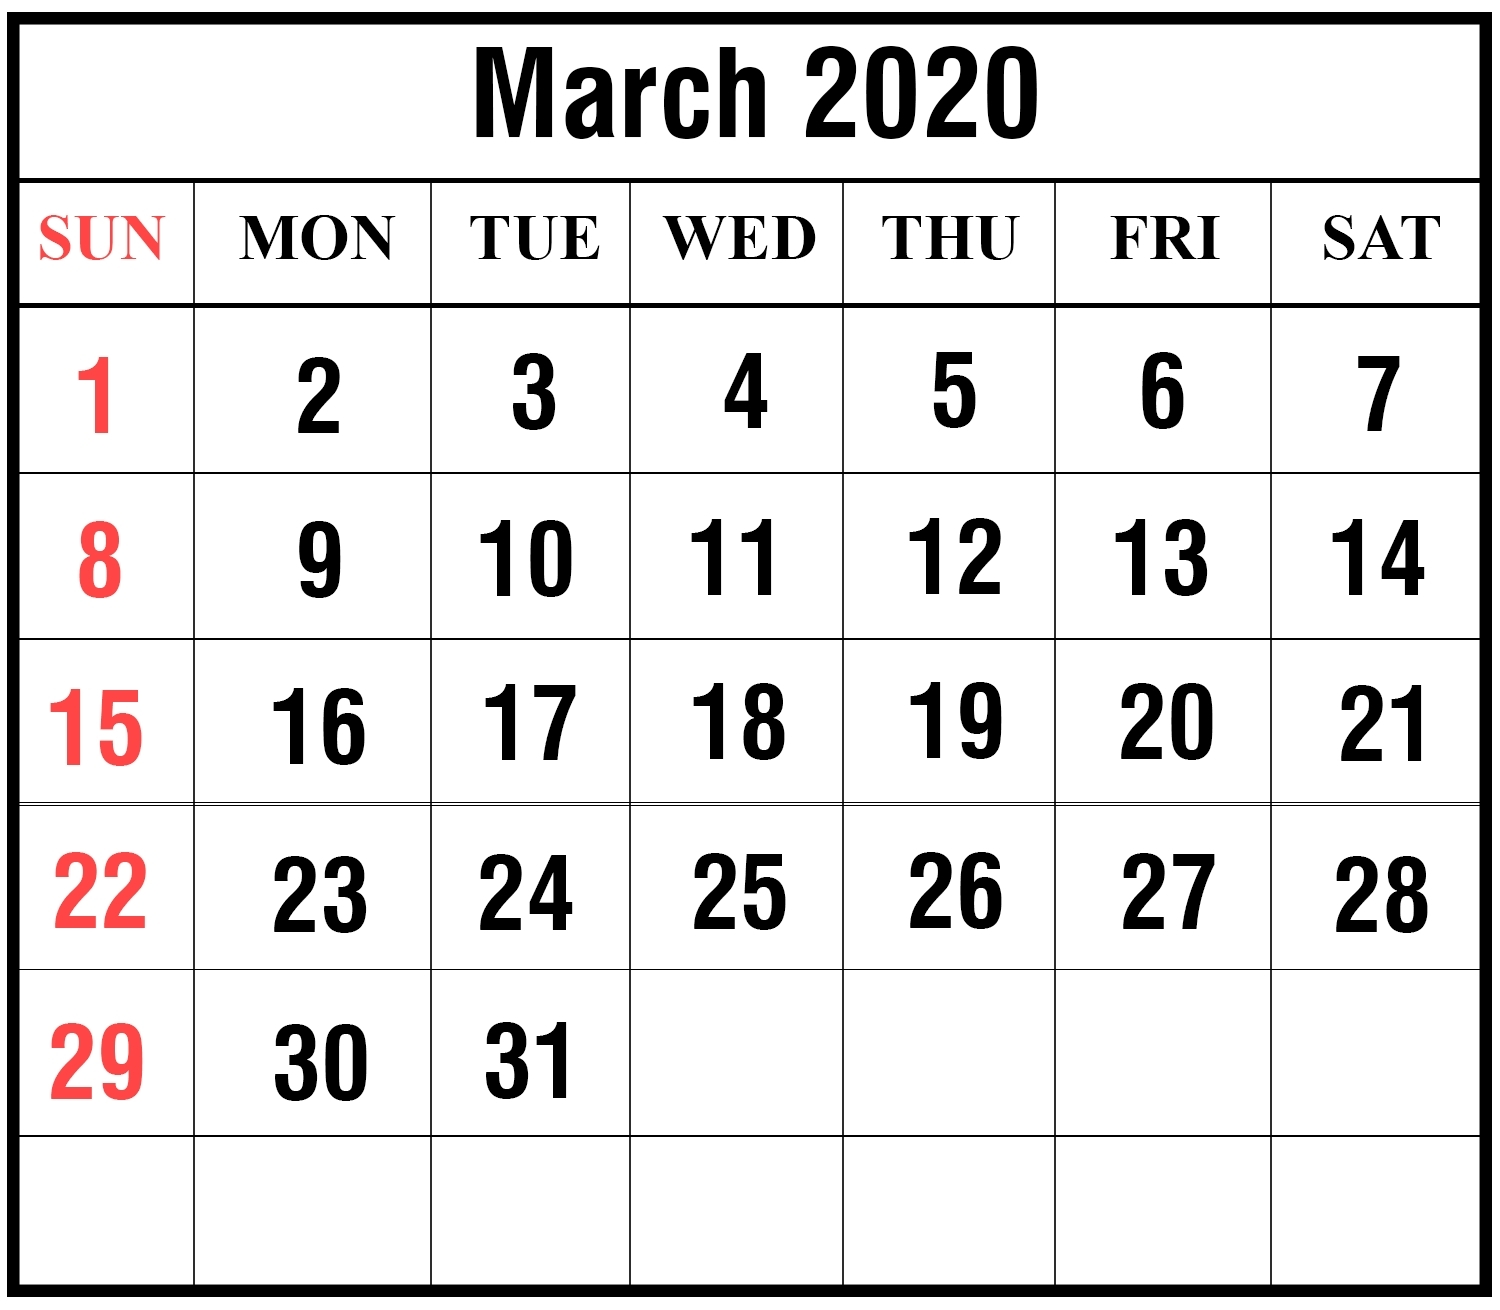 Print Free 201 Calendar Without Downloading And Can Edit   Ten Free Printable Calendar 2020-2021